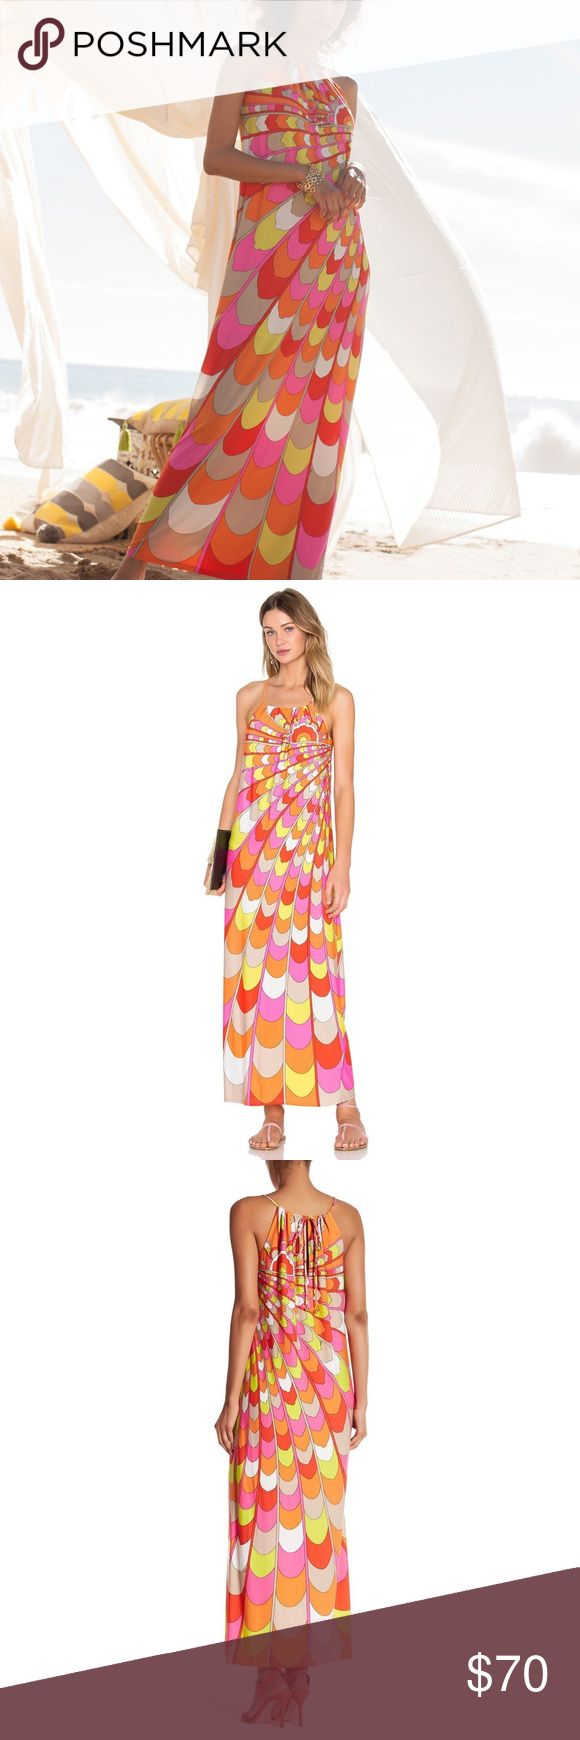 """• NWOT Trina Turk Bennie Jersey Maxi Dress • Armpit to armpit: 17.5 in  Details:  Crew neck Adjustable spaghetti straps Sleeveless Back keyhole with tie closure Allover print Approx. 55.2"""" length  Made in USA Trina Turk Dresses Maxi"""